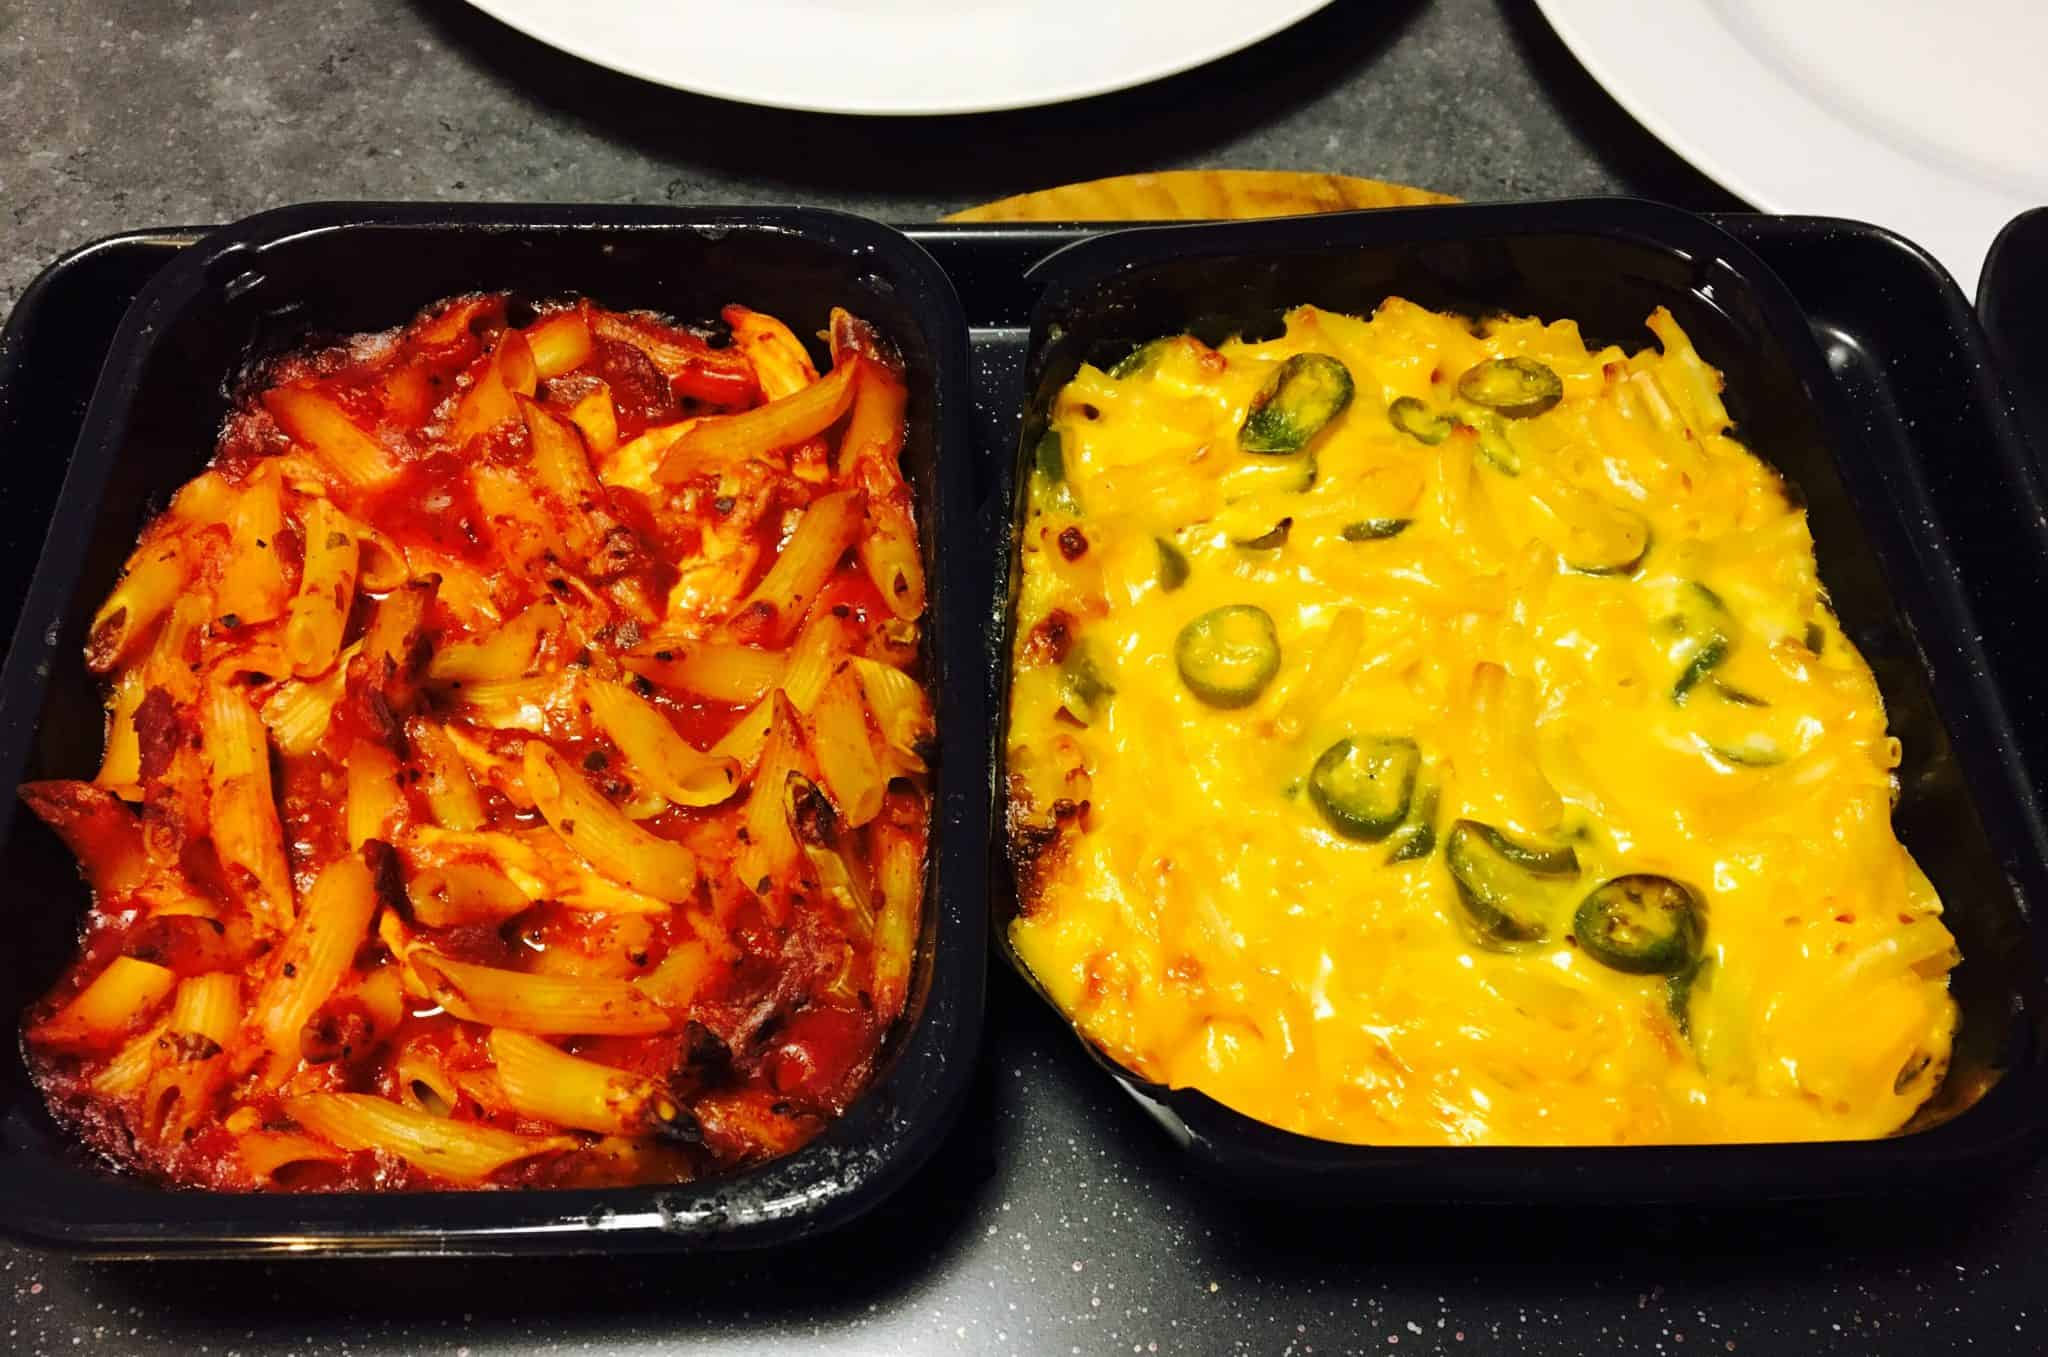 The Shack Mac n Cheese and Penne Pasta